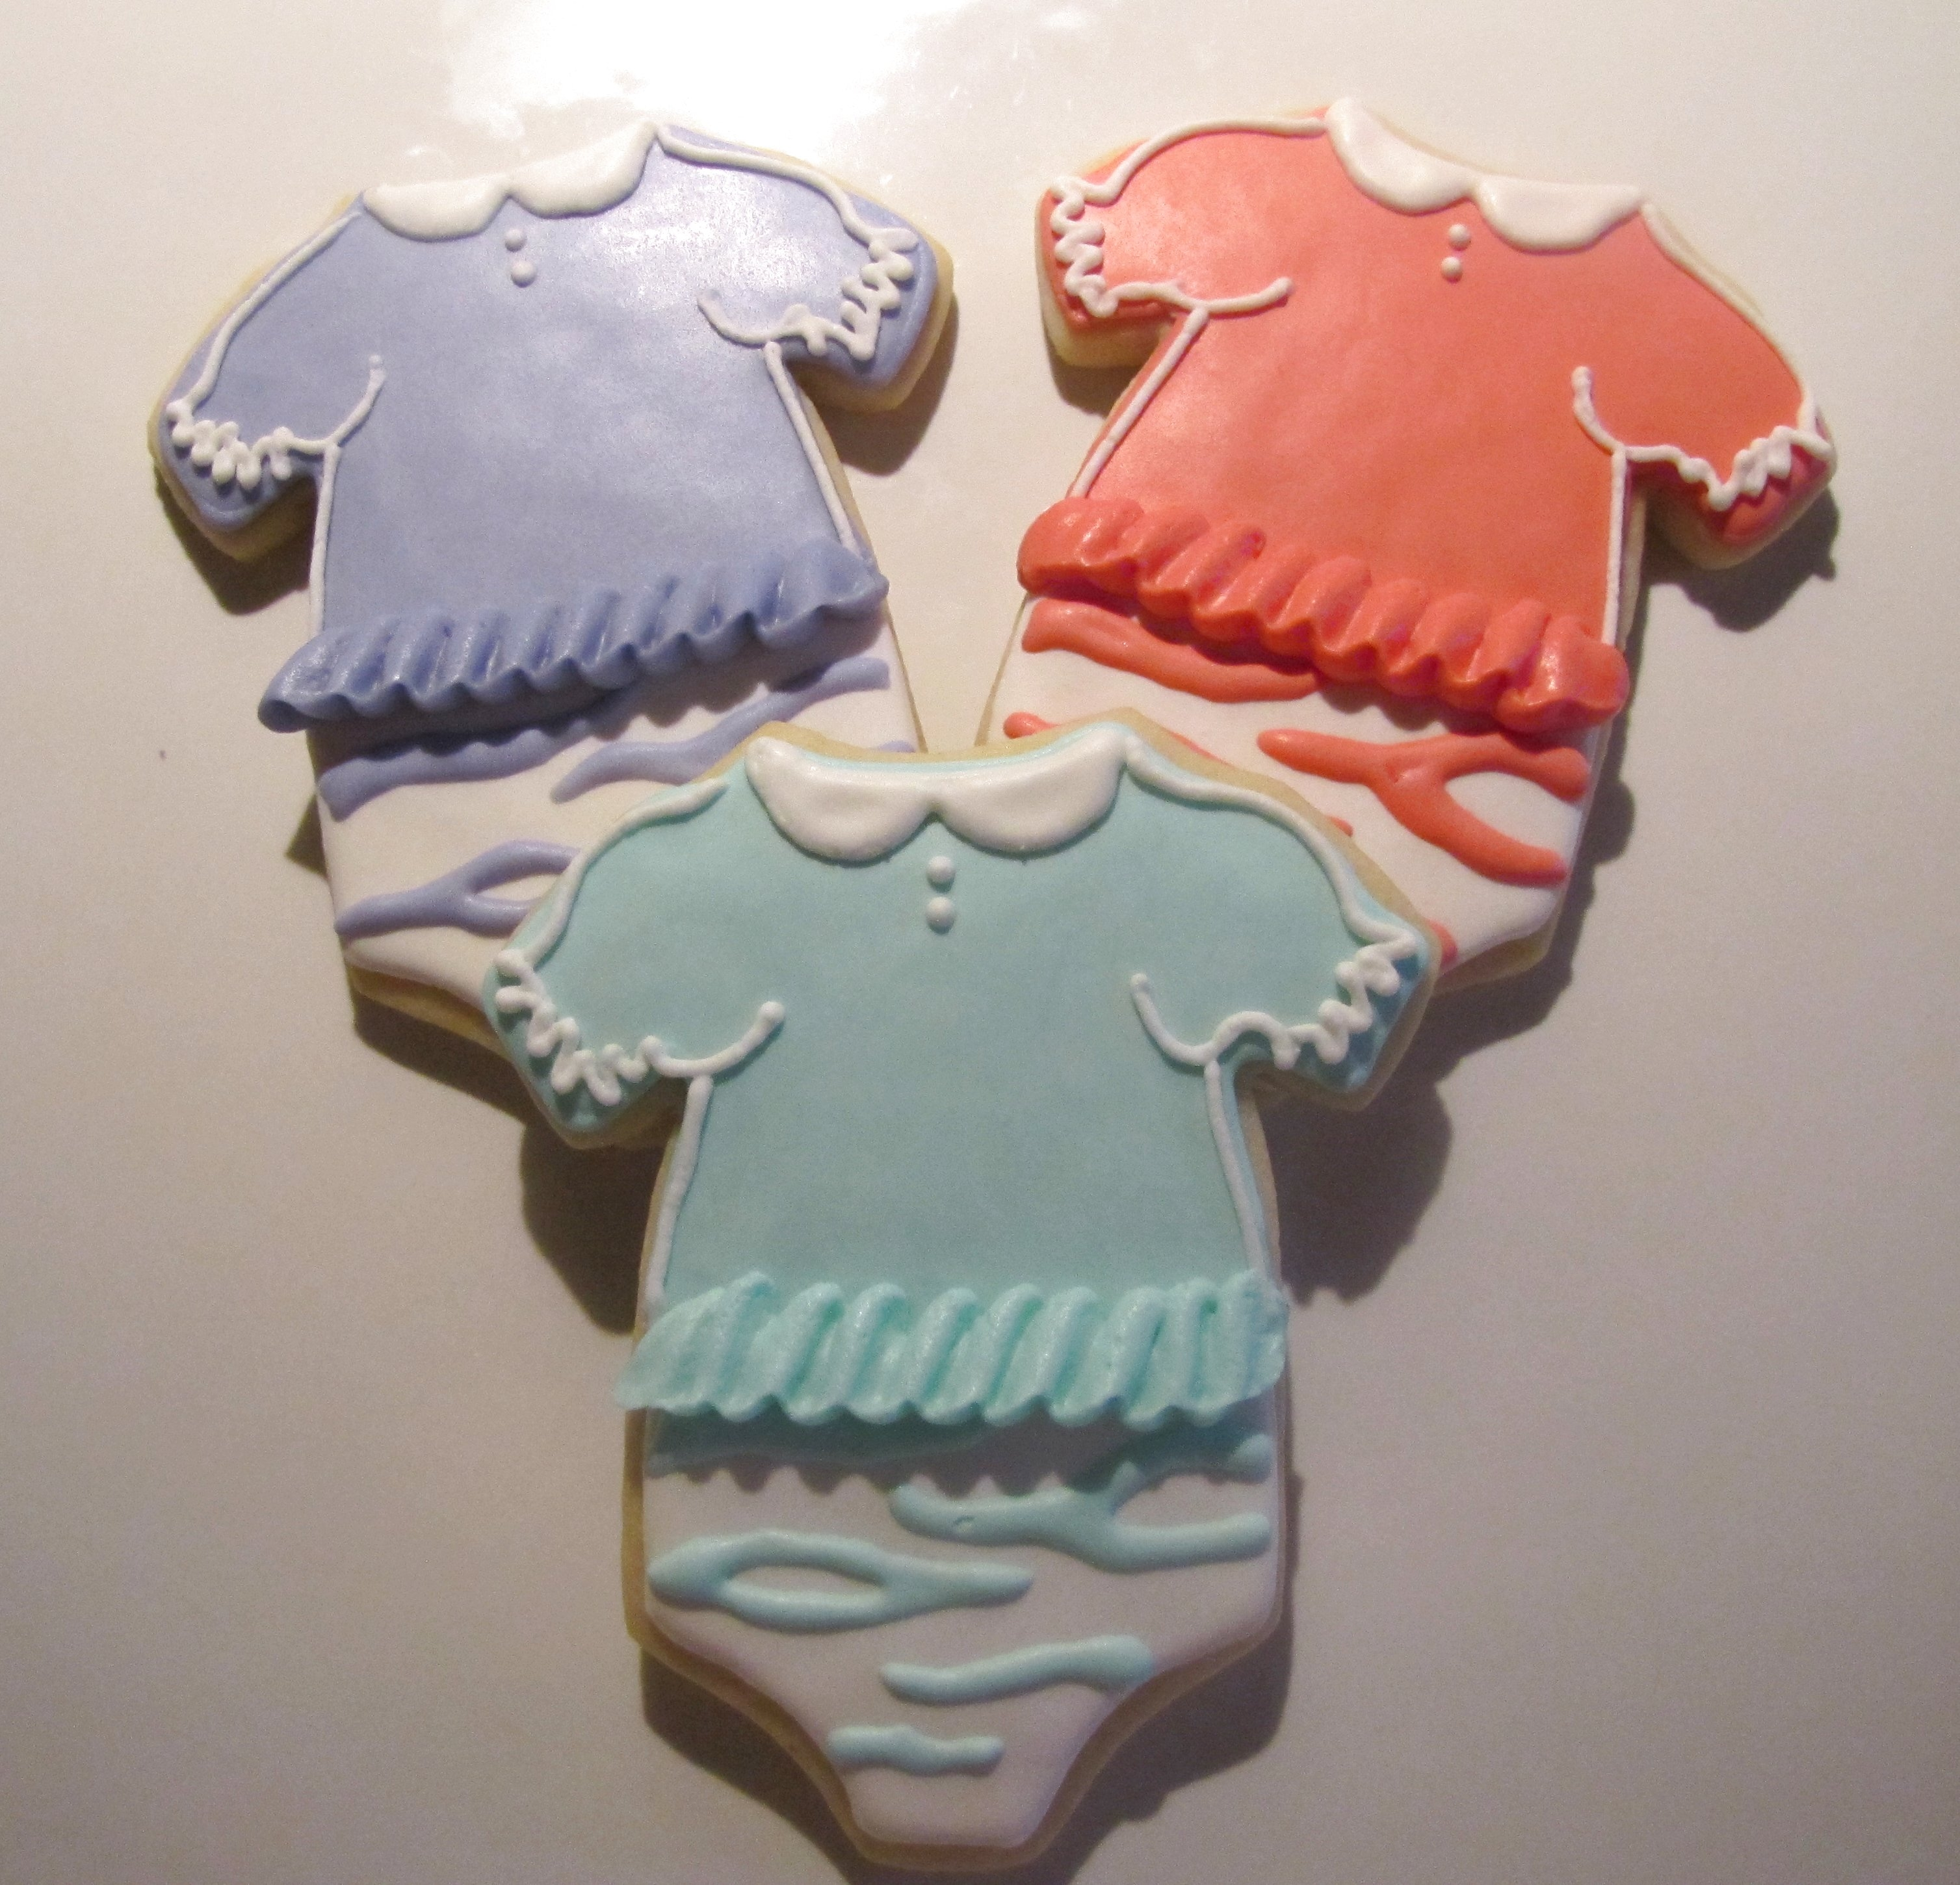 Baby girl onesies with ruffles & zebra stripes.  Vanilla sugar cookies with a modified RI.  Sorry for the poor quality photo; had to take it at night!  Colors were more pastel